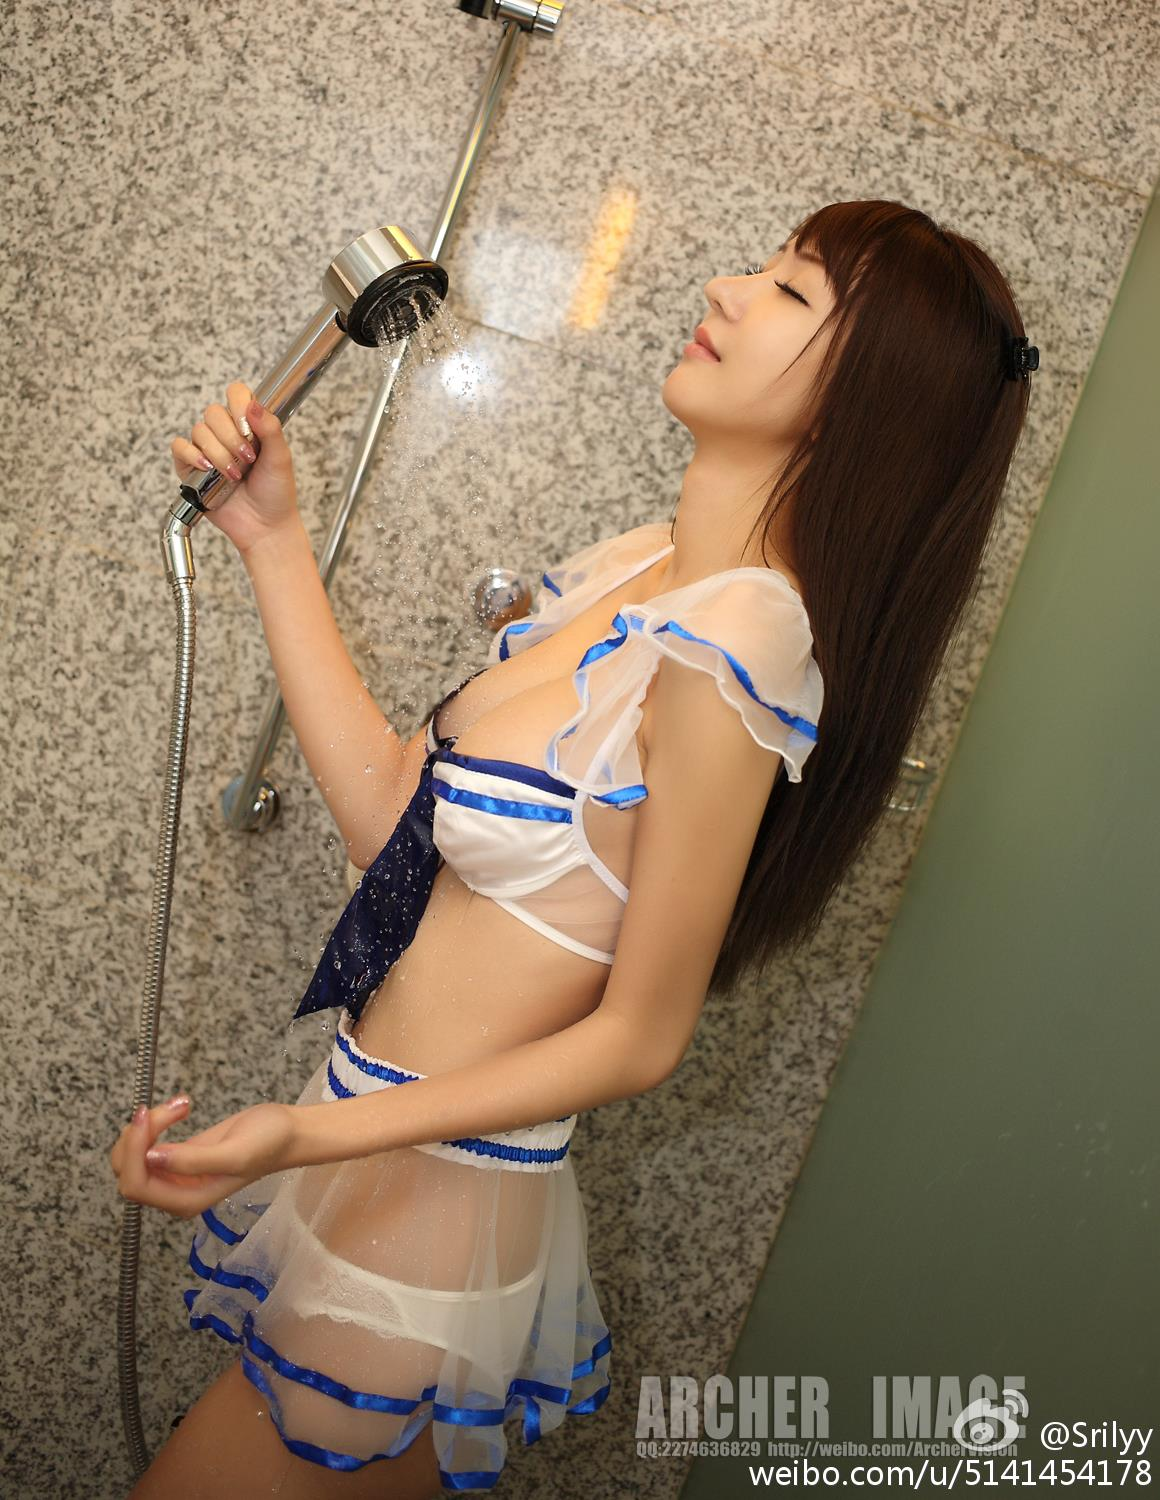 hot Chines woman in shower room